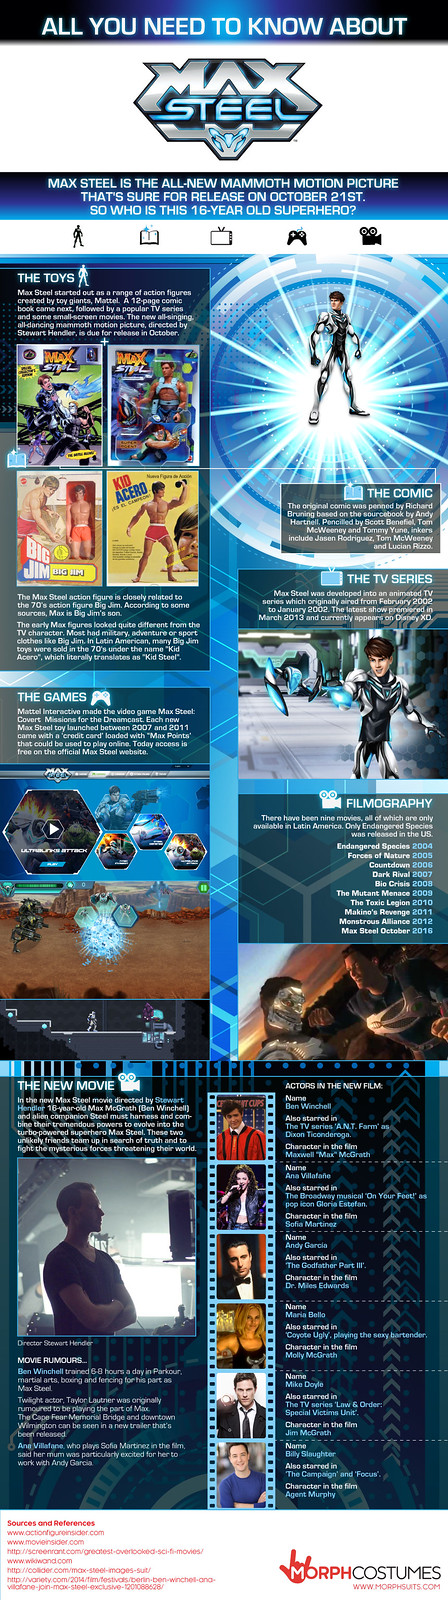 Max-Steel-Infographic